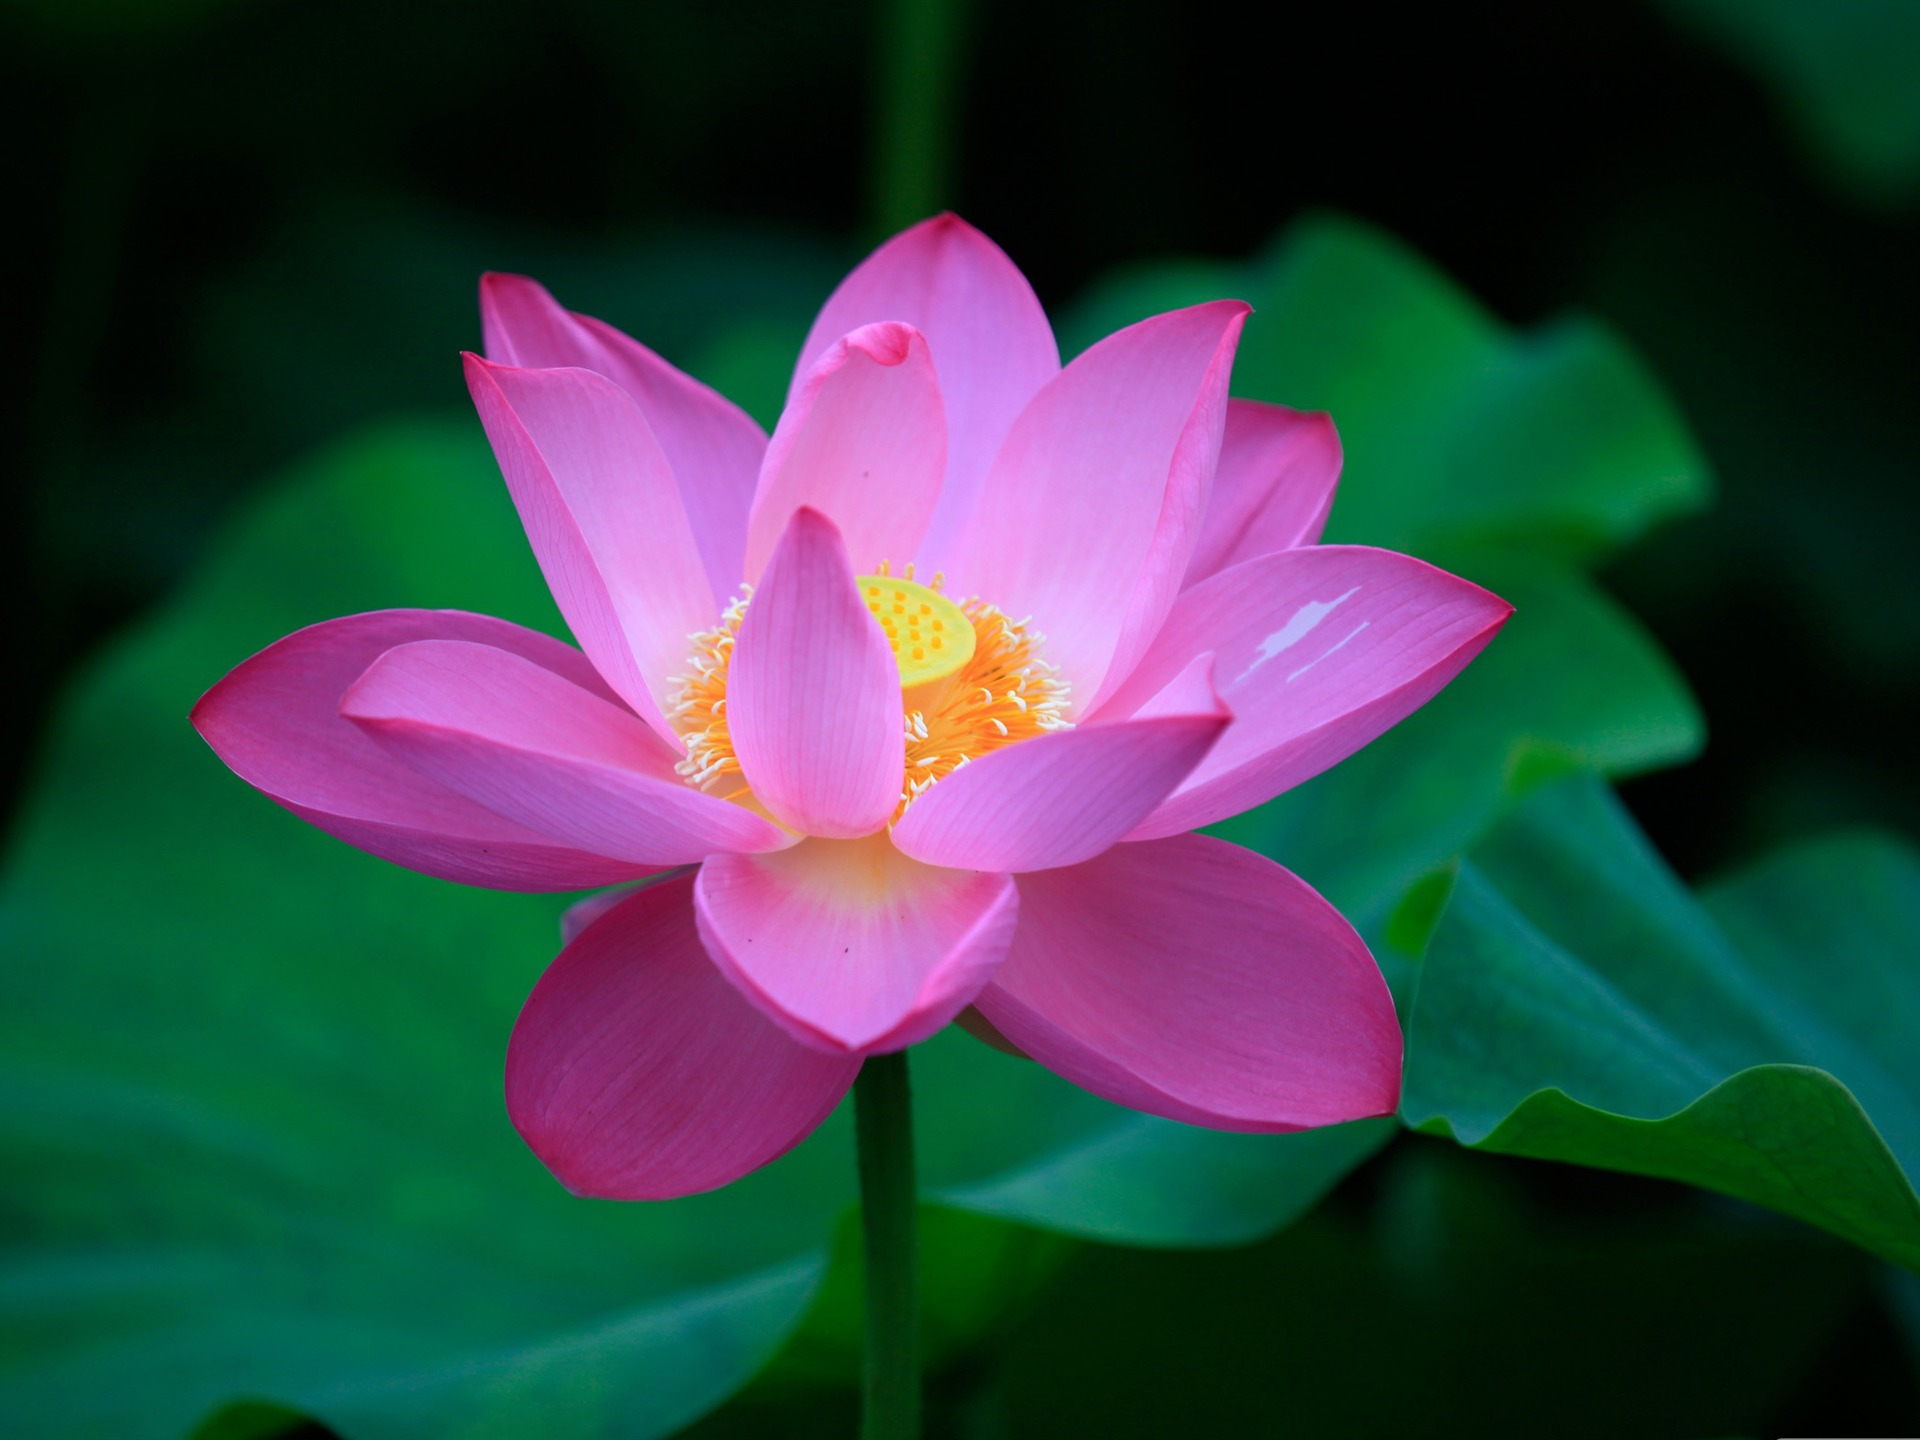 Lotus Flower Design Wall Paper : Lotus rose flowers photography desktop